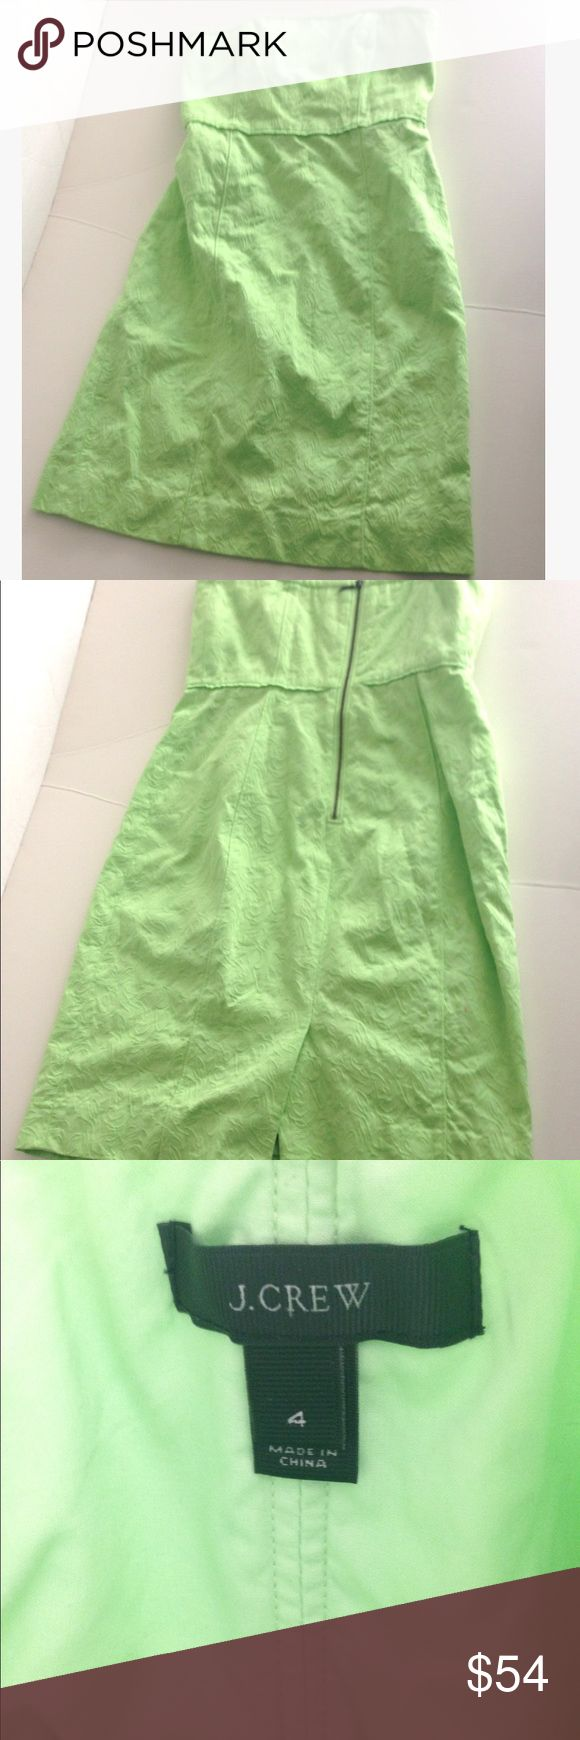 J.Crew 100% cotton beach casual strapless dress J.Crew 100% cotton beach casual strapless dress-zips in back -lined underneath. J. Crew Dresses Strapless